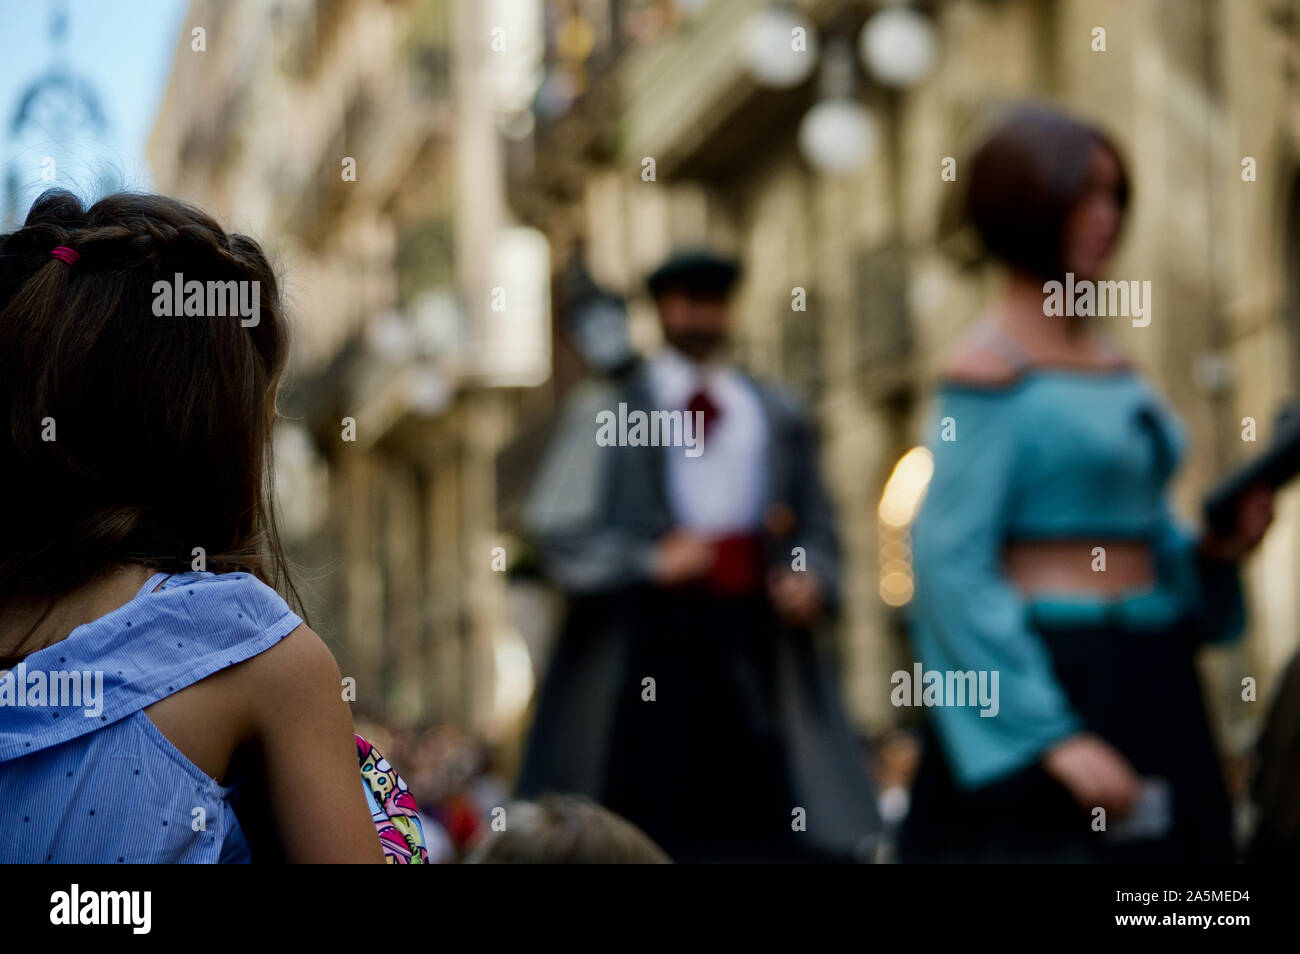 A girl watching the Giants Parade during La Merce Festival 2019 at Placa de Sant Jaume in Barcelona, Spain Stock Photo